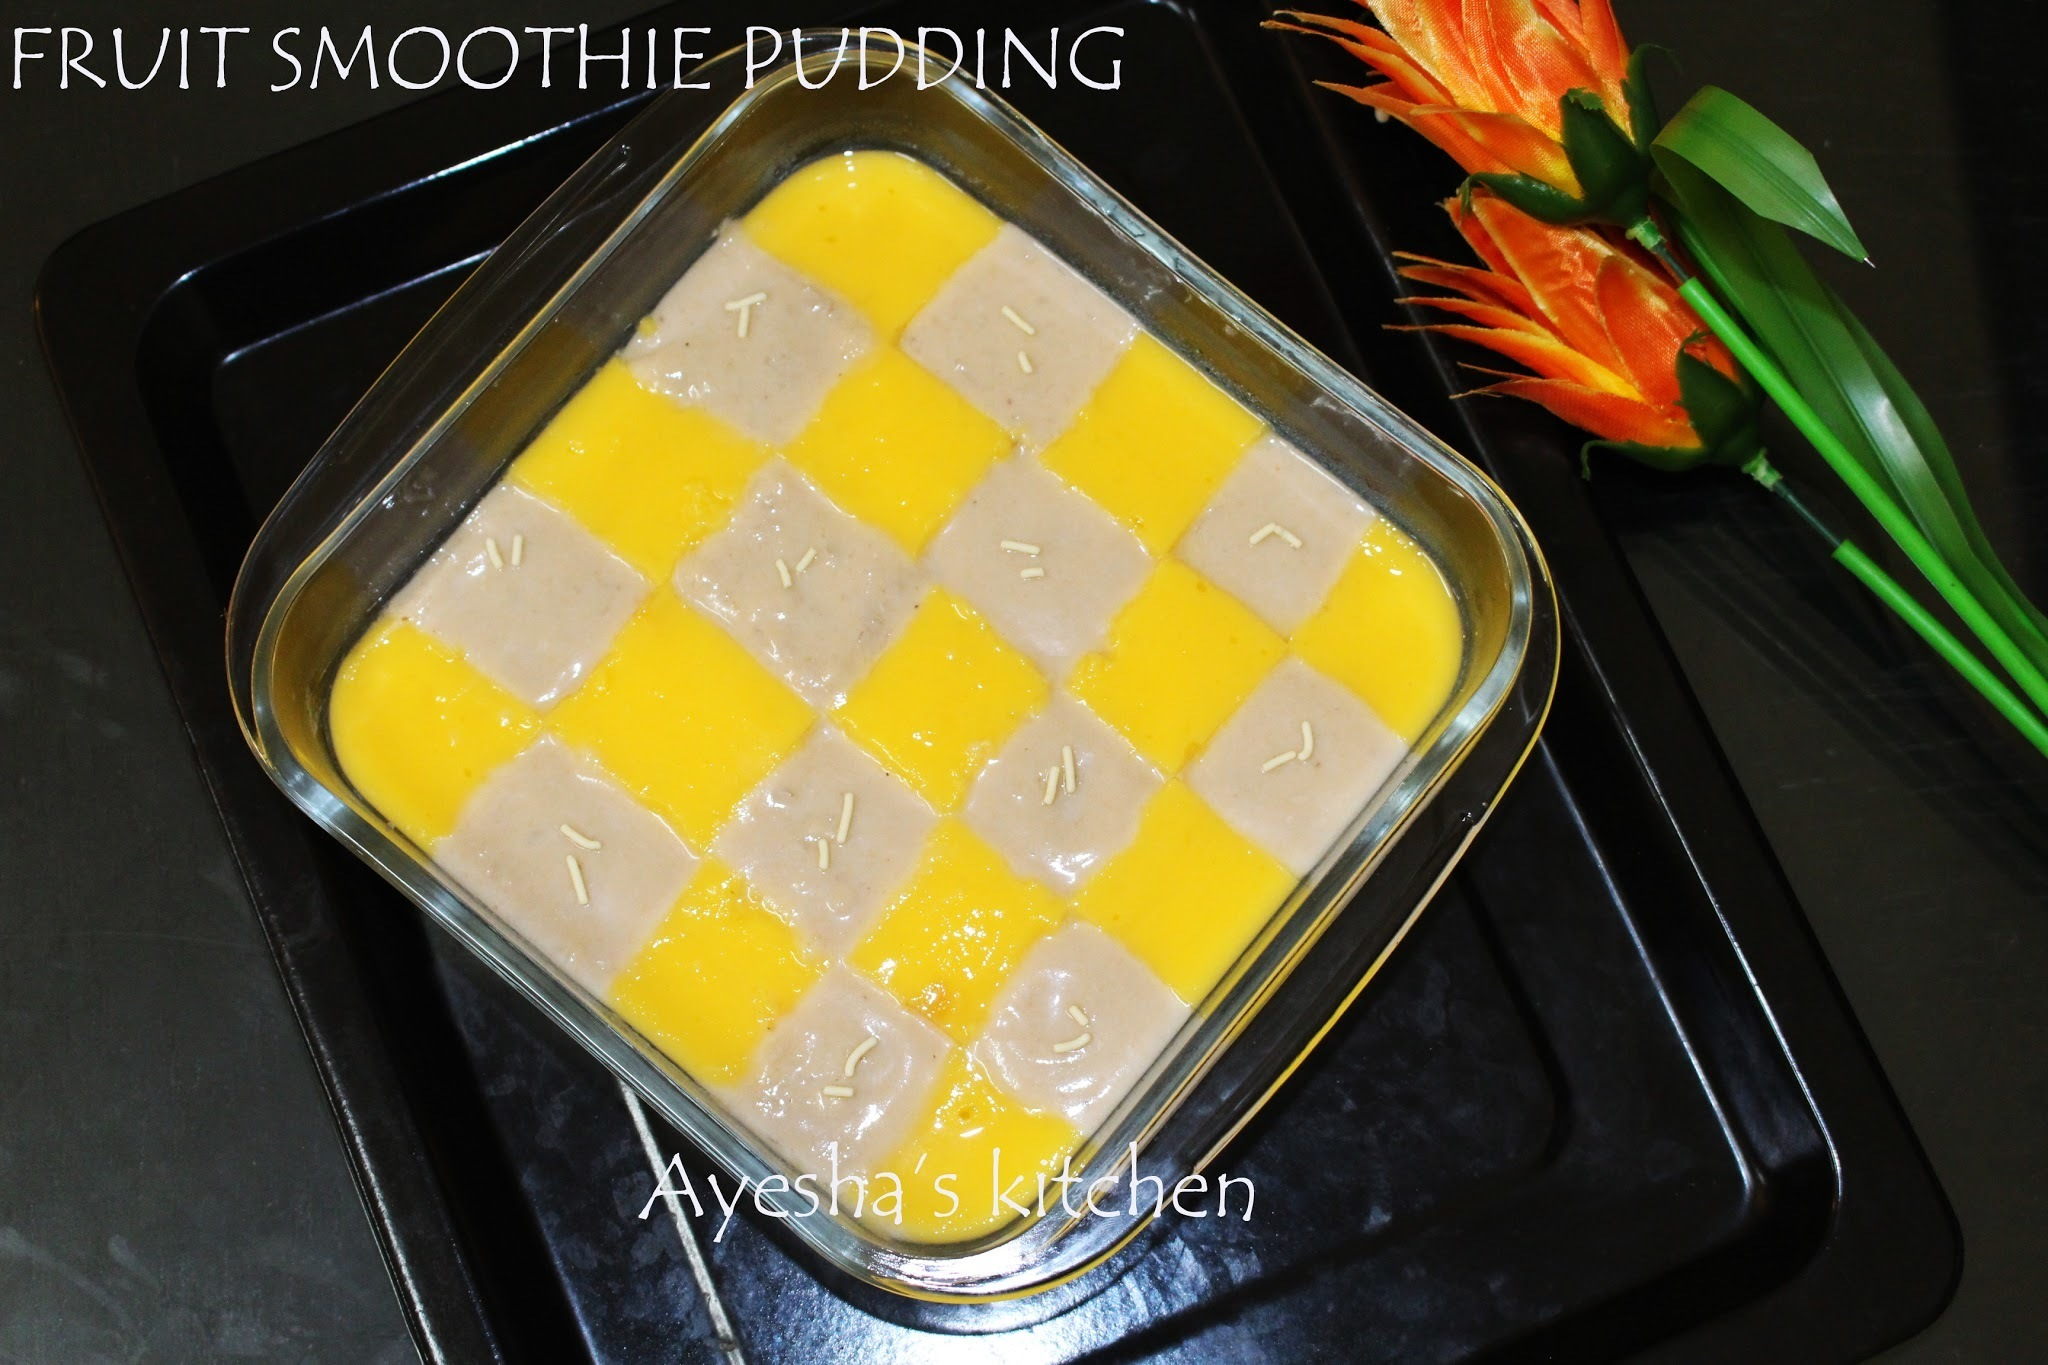 PUDDING RECIPE - FRUIT SMOOTHIE PUDDING